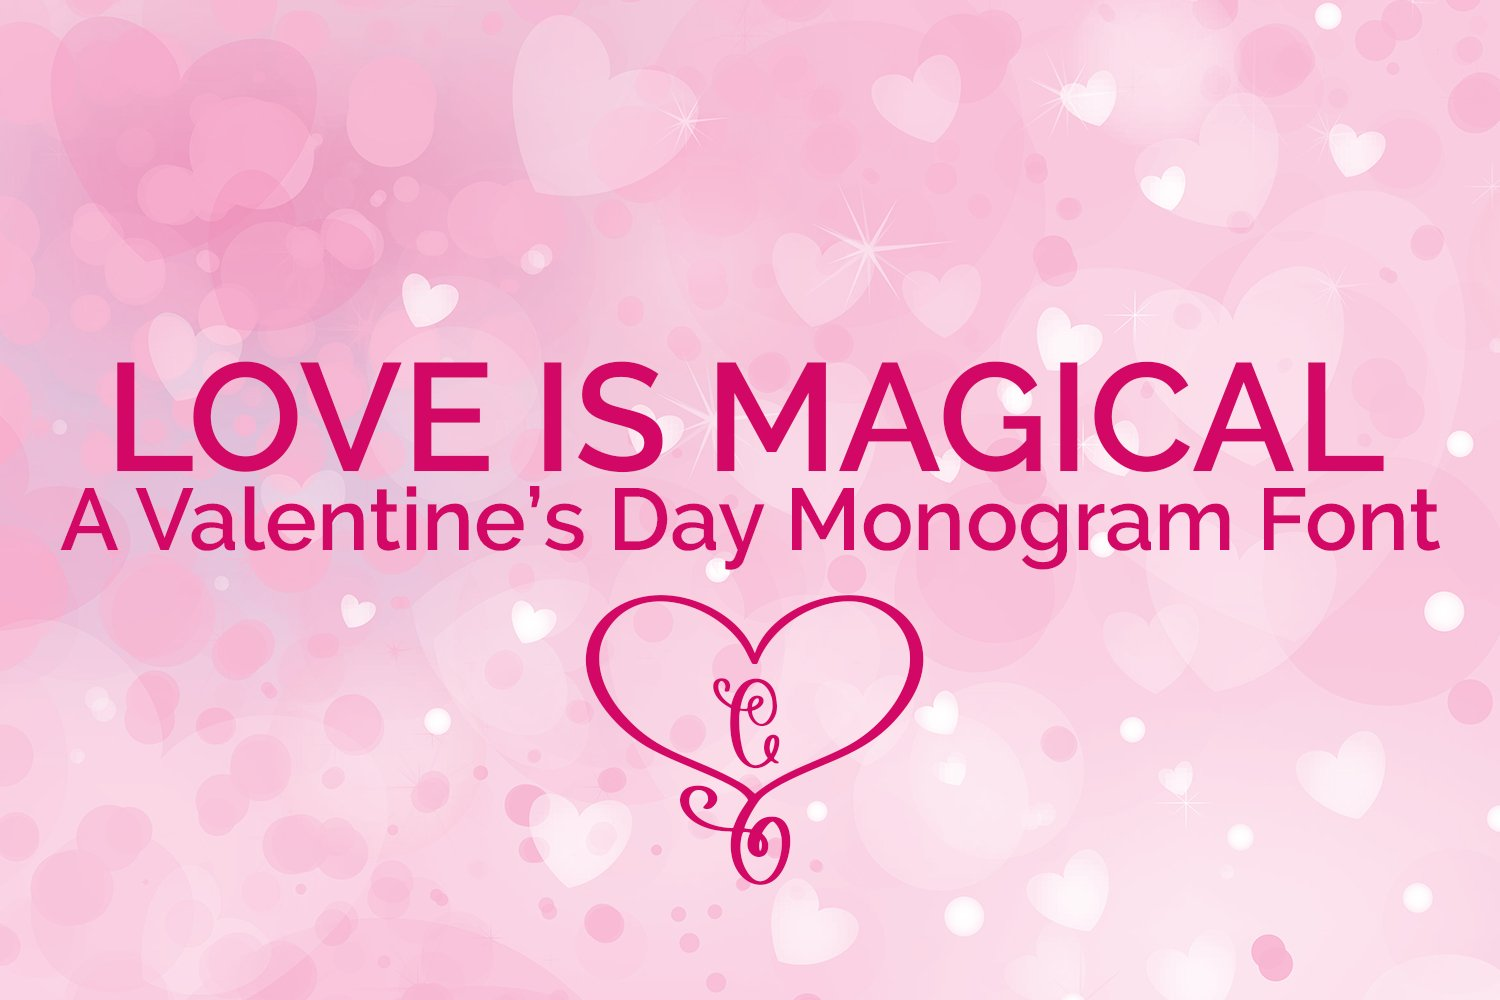 Love is Magical - A Valentine's Day Monogram Font example image 1